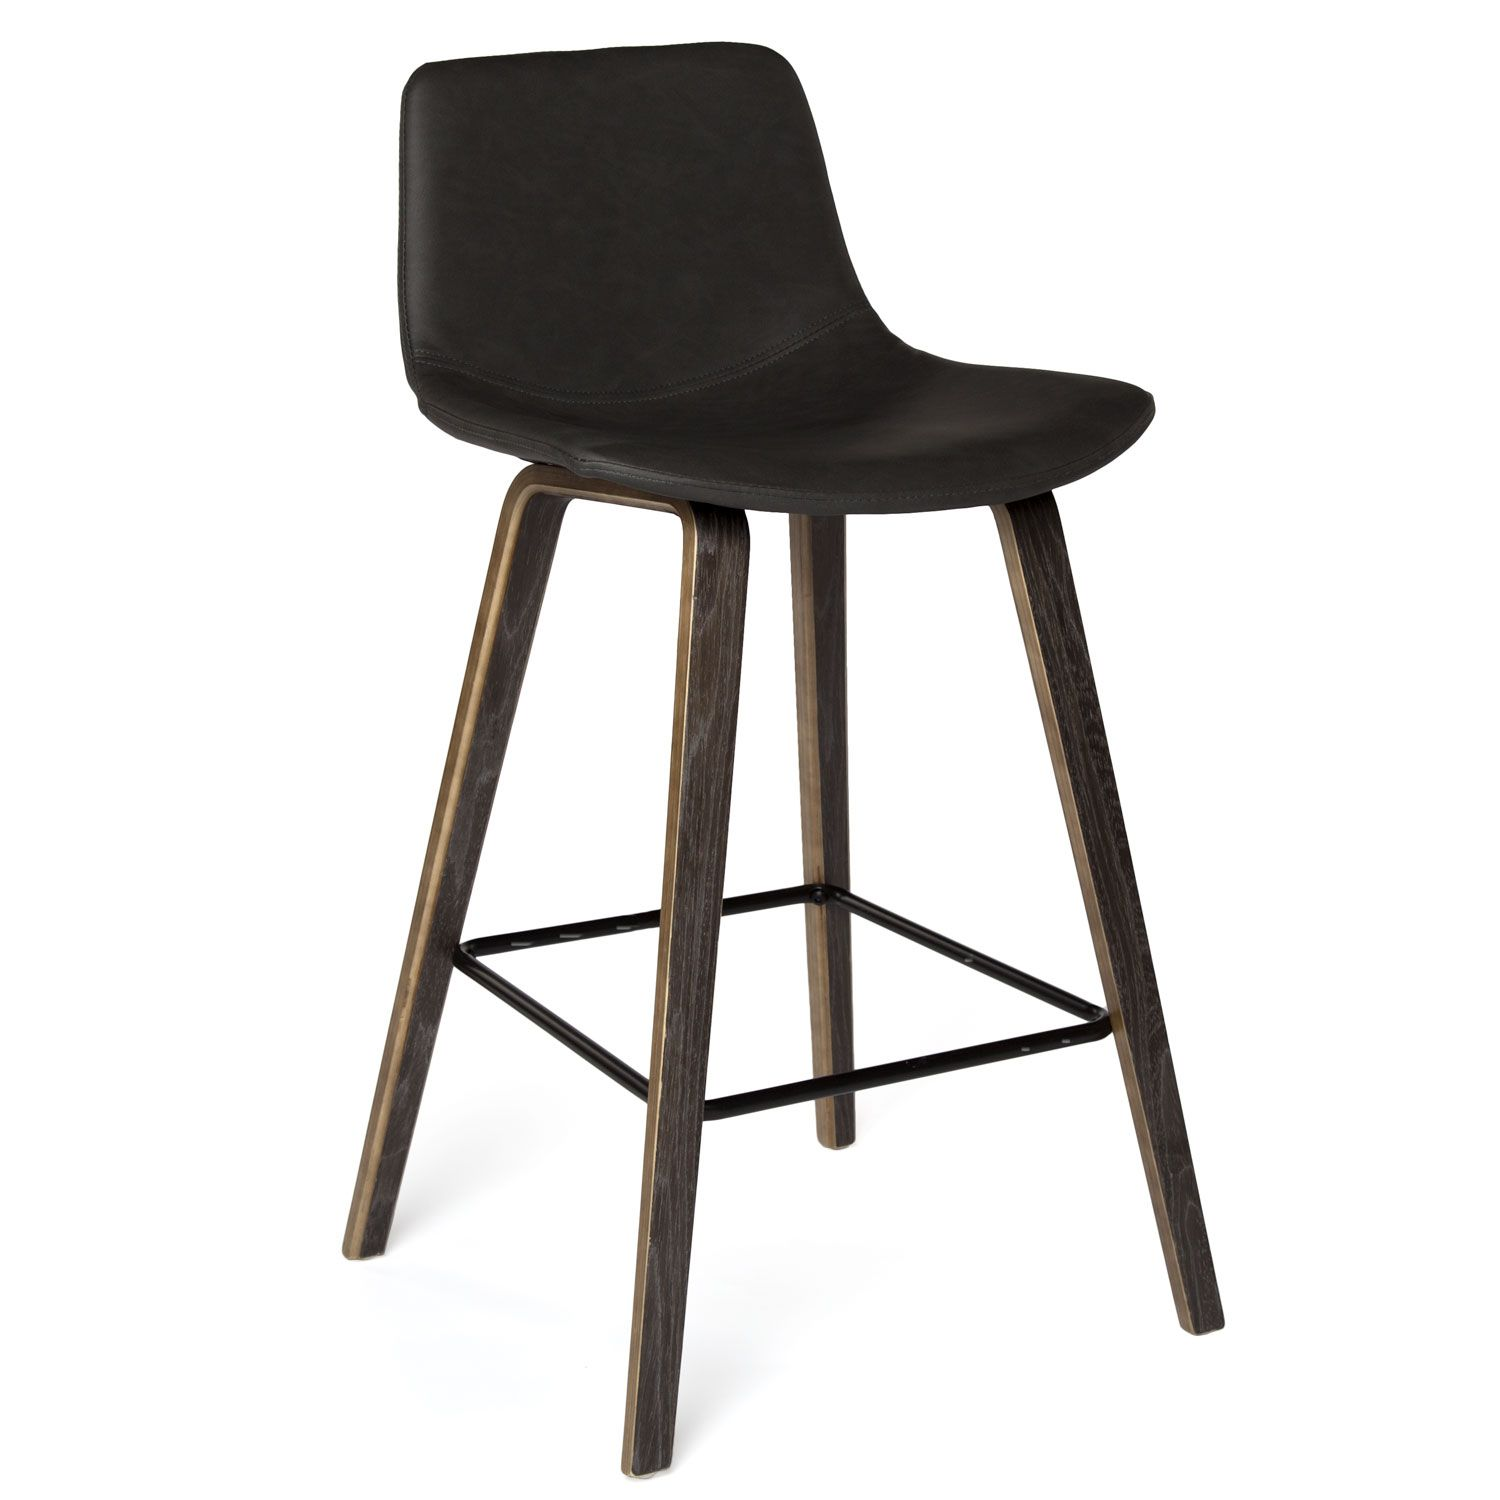 Modern Counter Stool With Vintage Polyurethane Cover In 2 Colors Grey Wood Finish Legs Accented With Black Metal Modern Counter Stools Counter Stools Stool